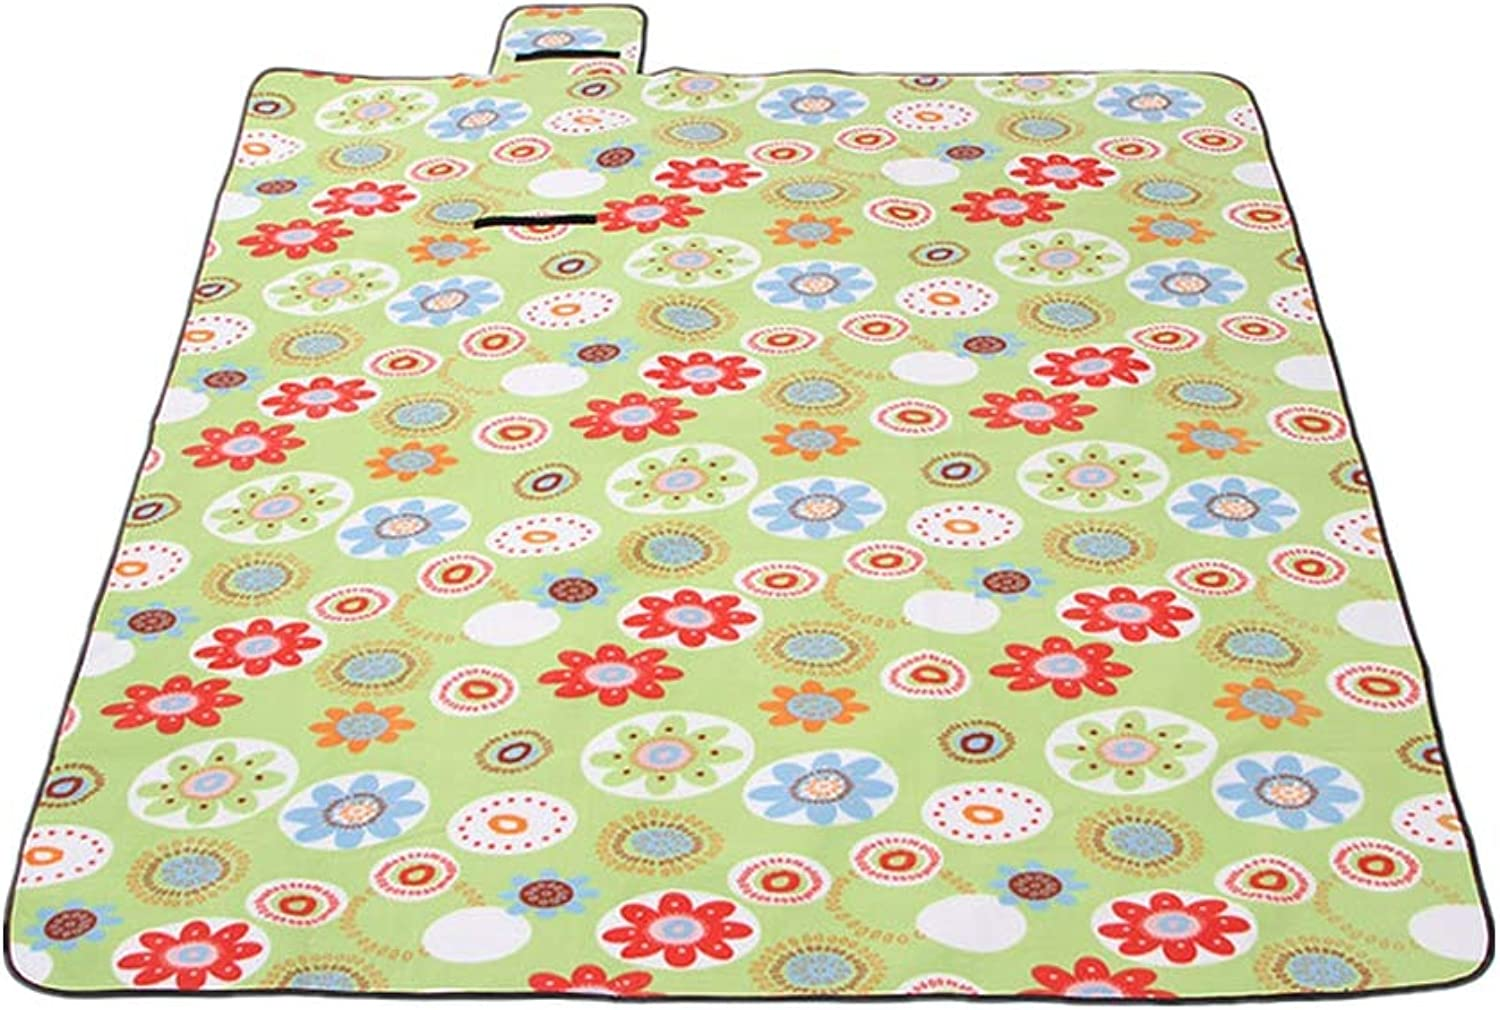 Picnic mat Out Portable Outdoor Thick Camping Camping Suburbs Waterproof and MoistureProof Beach Folding Travel pad 150  200cm